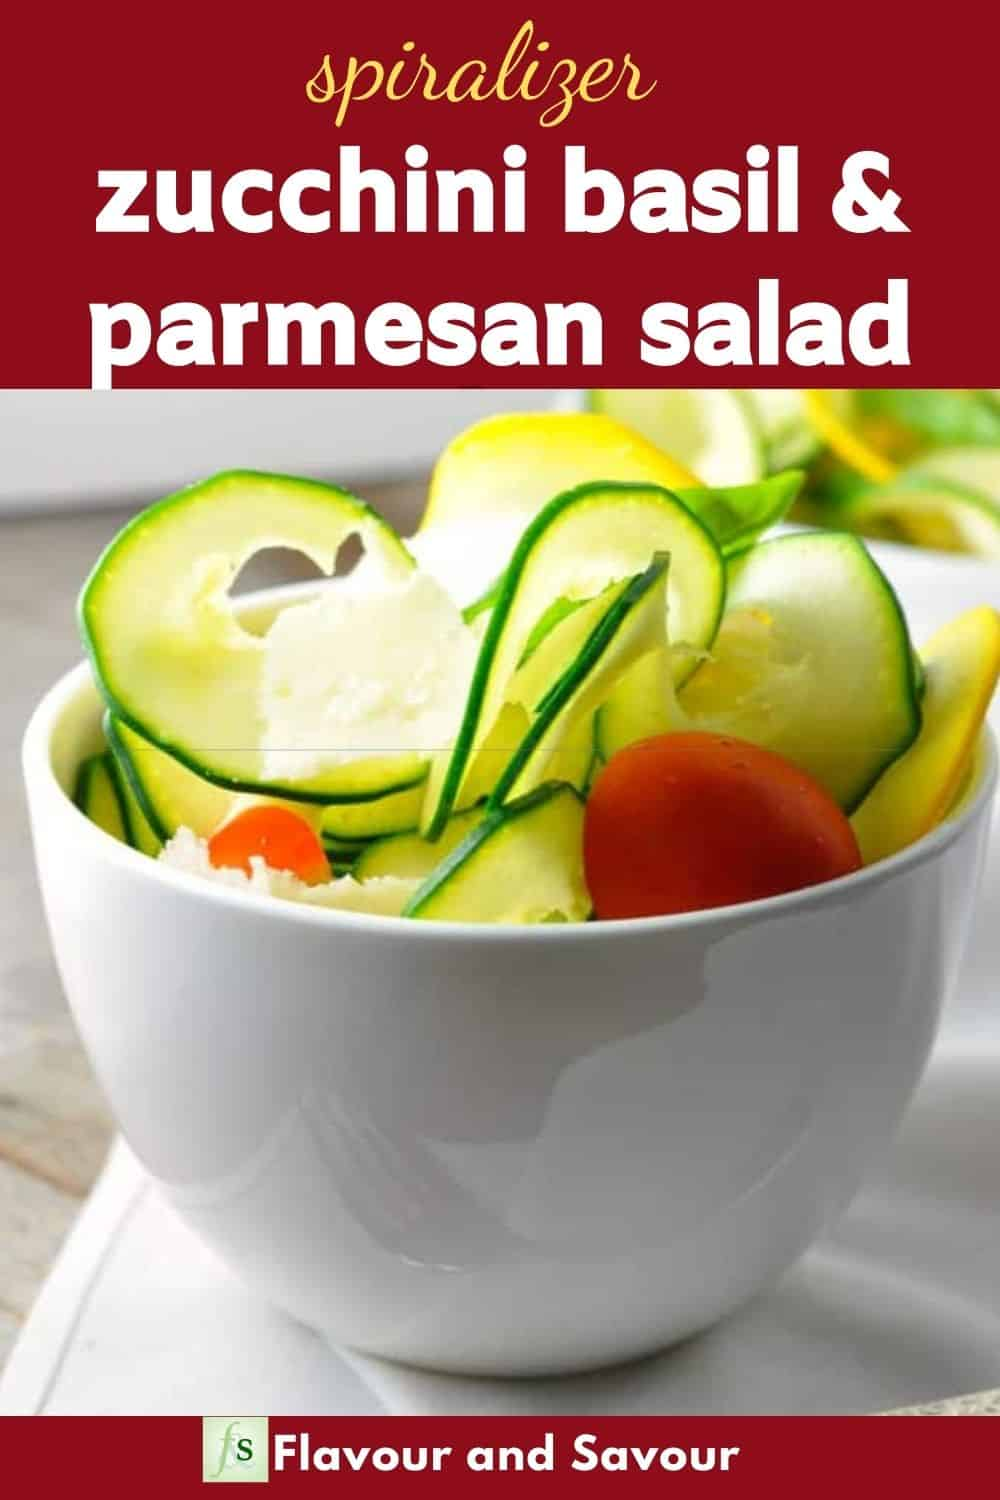 Image with text overlay for Zucchini Basil Parmesan Salad